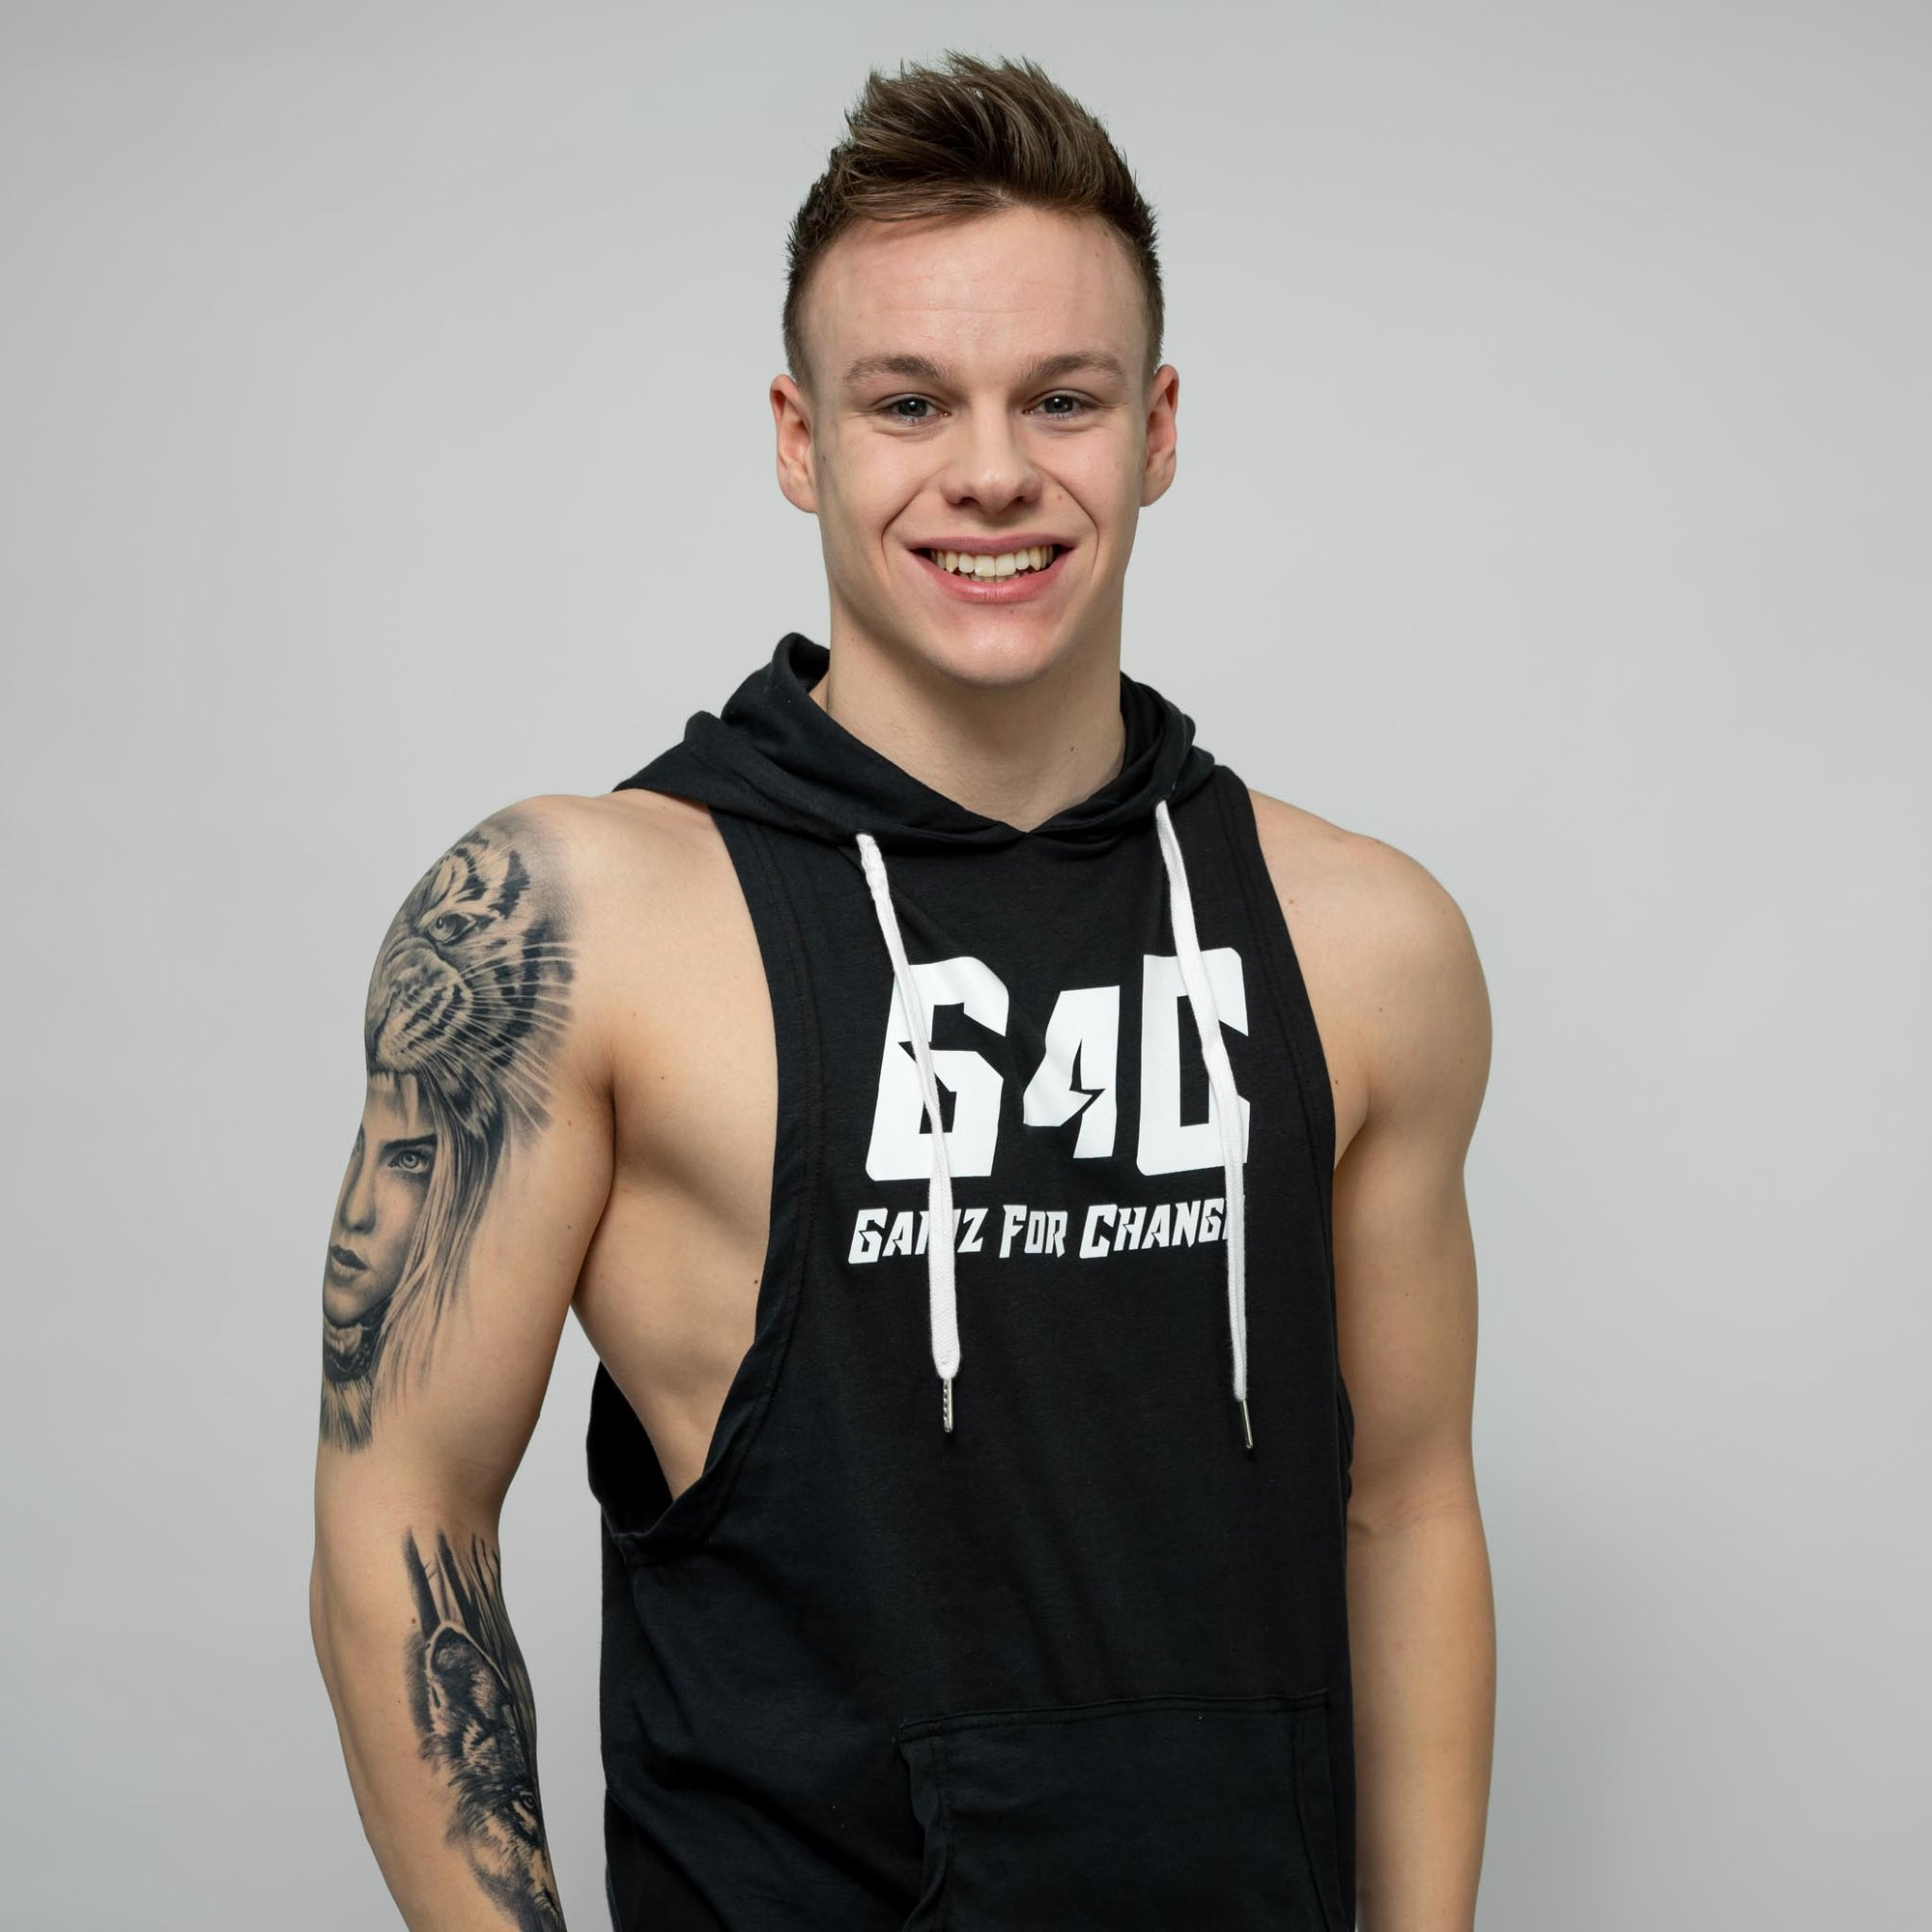 Gainz4Change Sleeveless Hoodie black - Gainz4Change